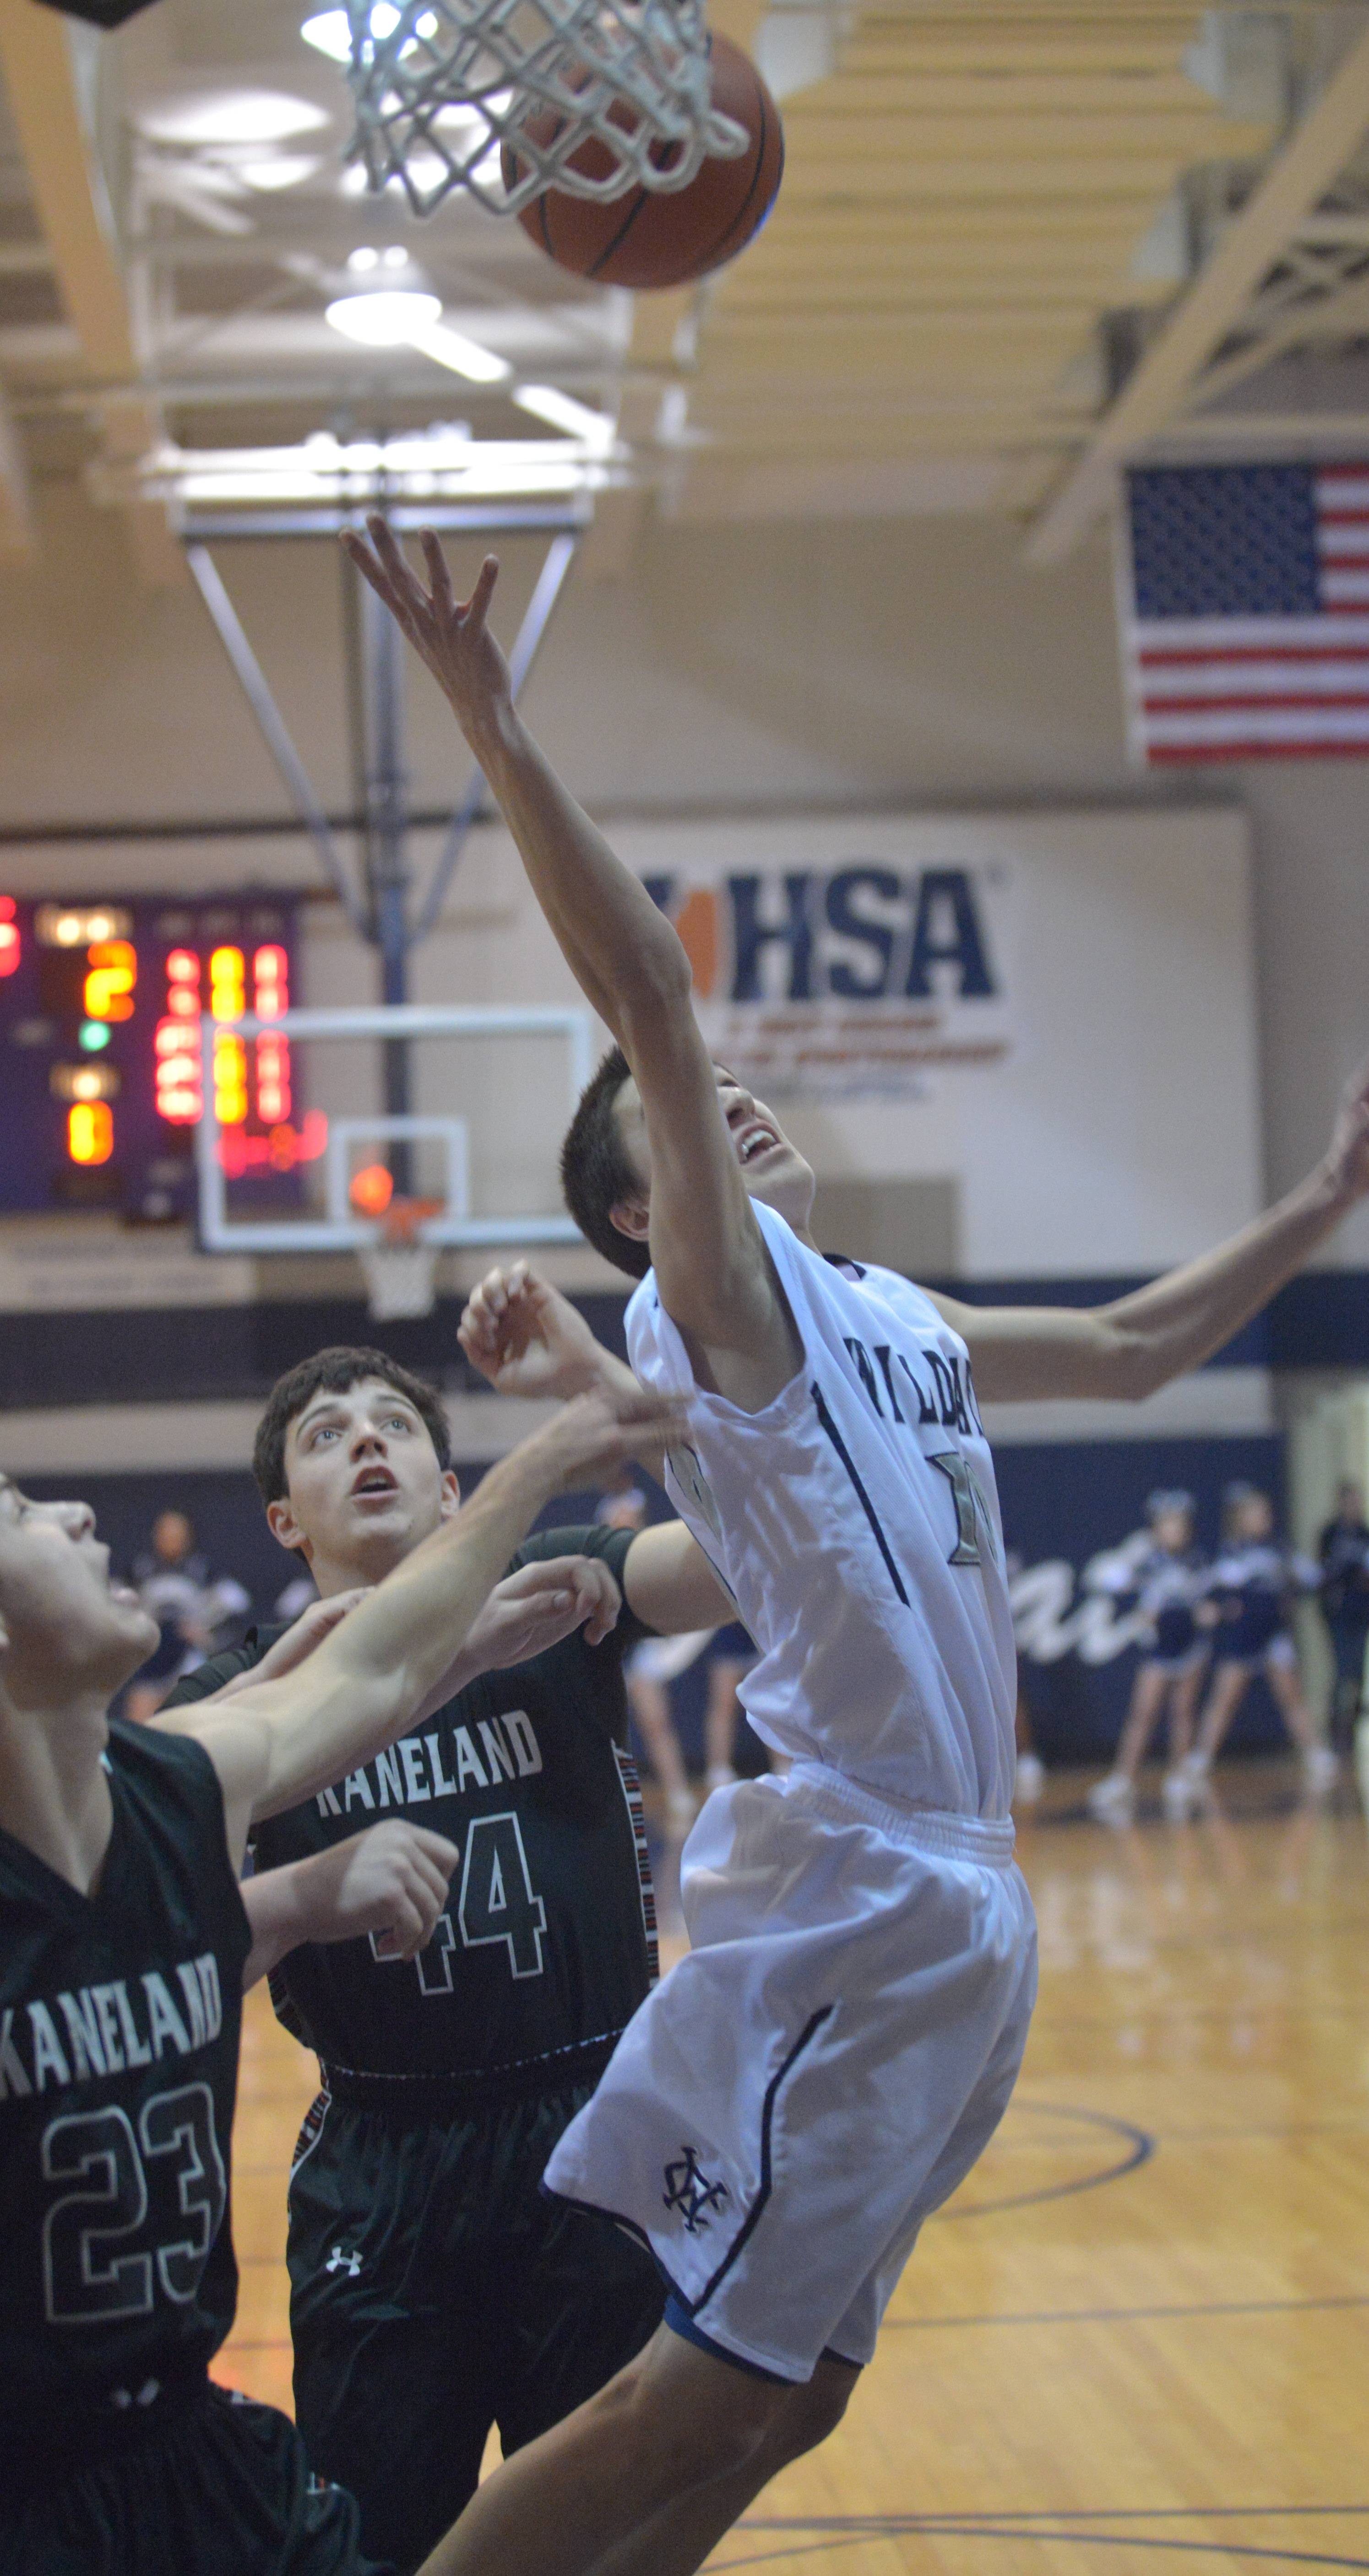 Photos from the Kaneland at West Chicago boys basketball game Tuesday, Feb. 11 in West Chicago